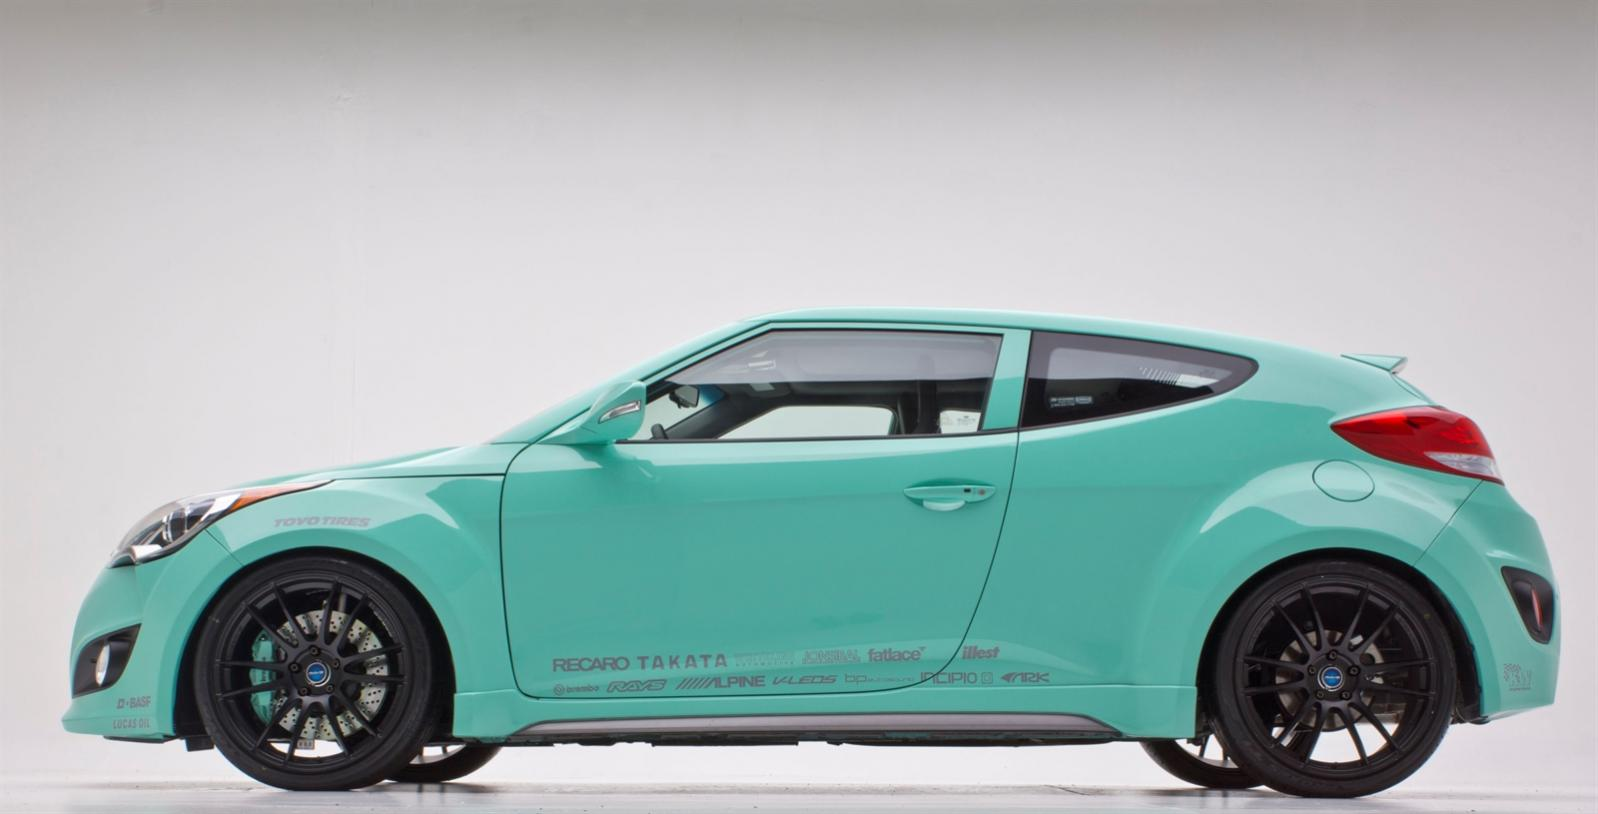 Hyundai Veloster Wikipedia the free encyclopedia HD Wallpapers